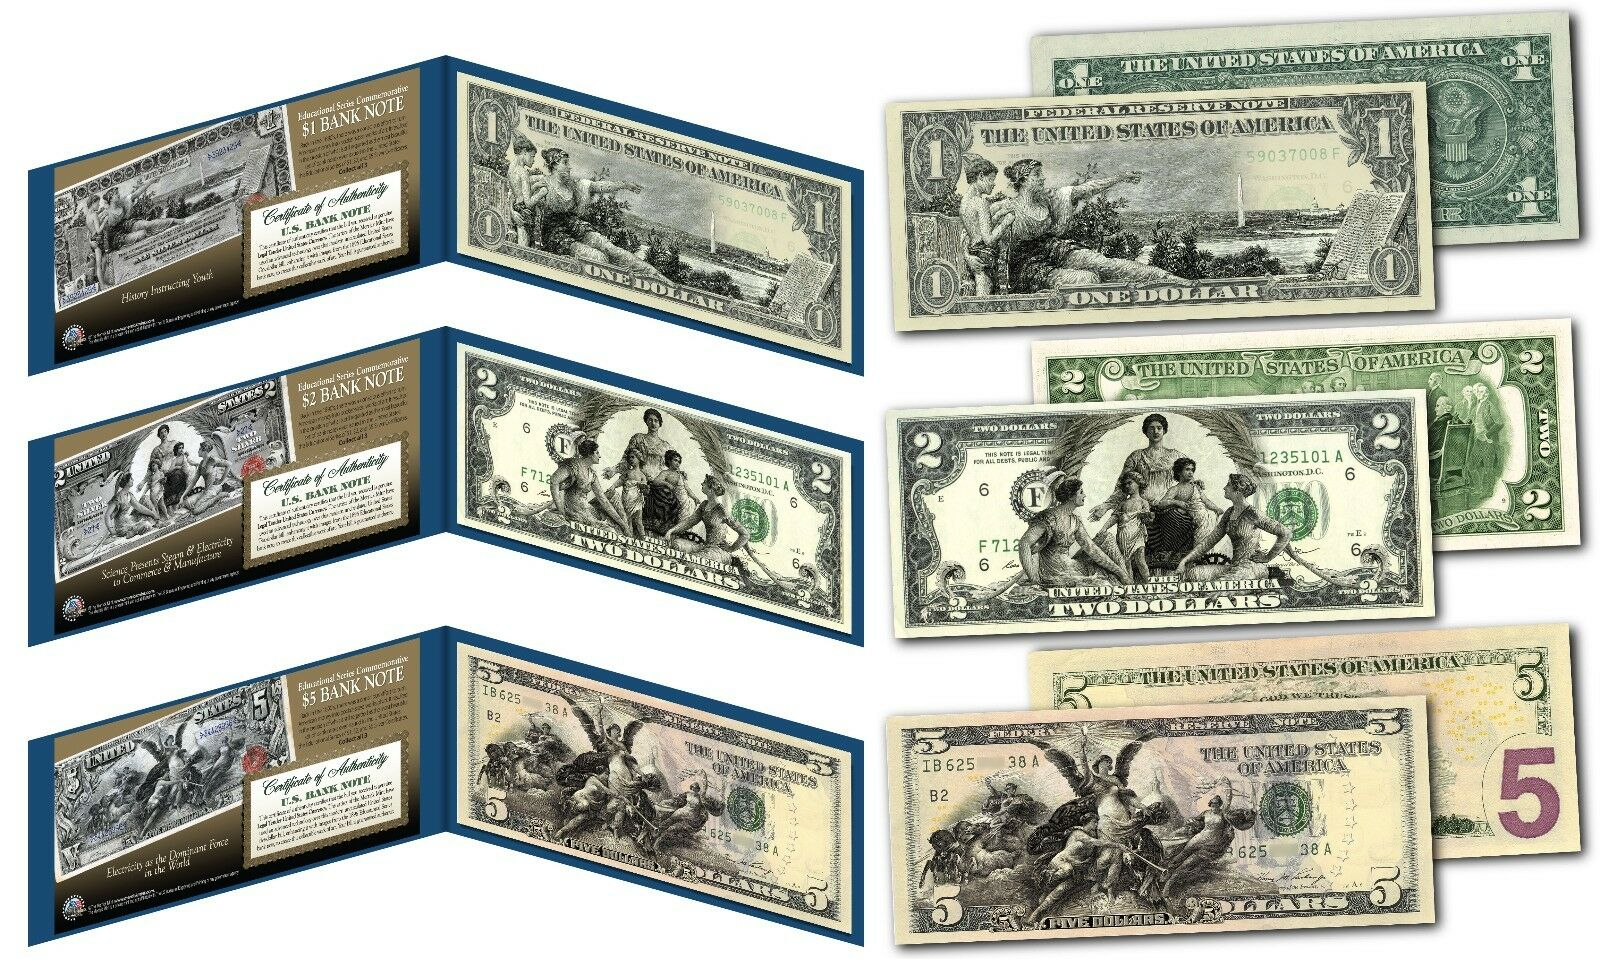 EDUCATIONAL SERIES 1896 Designed NEW Legal Tender Bills $1/$2/$5 - Set of all 3